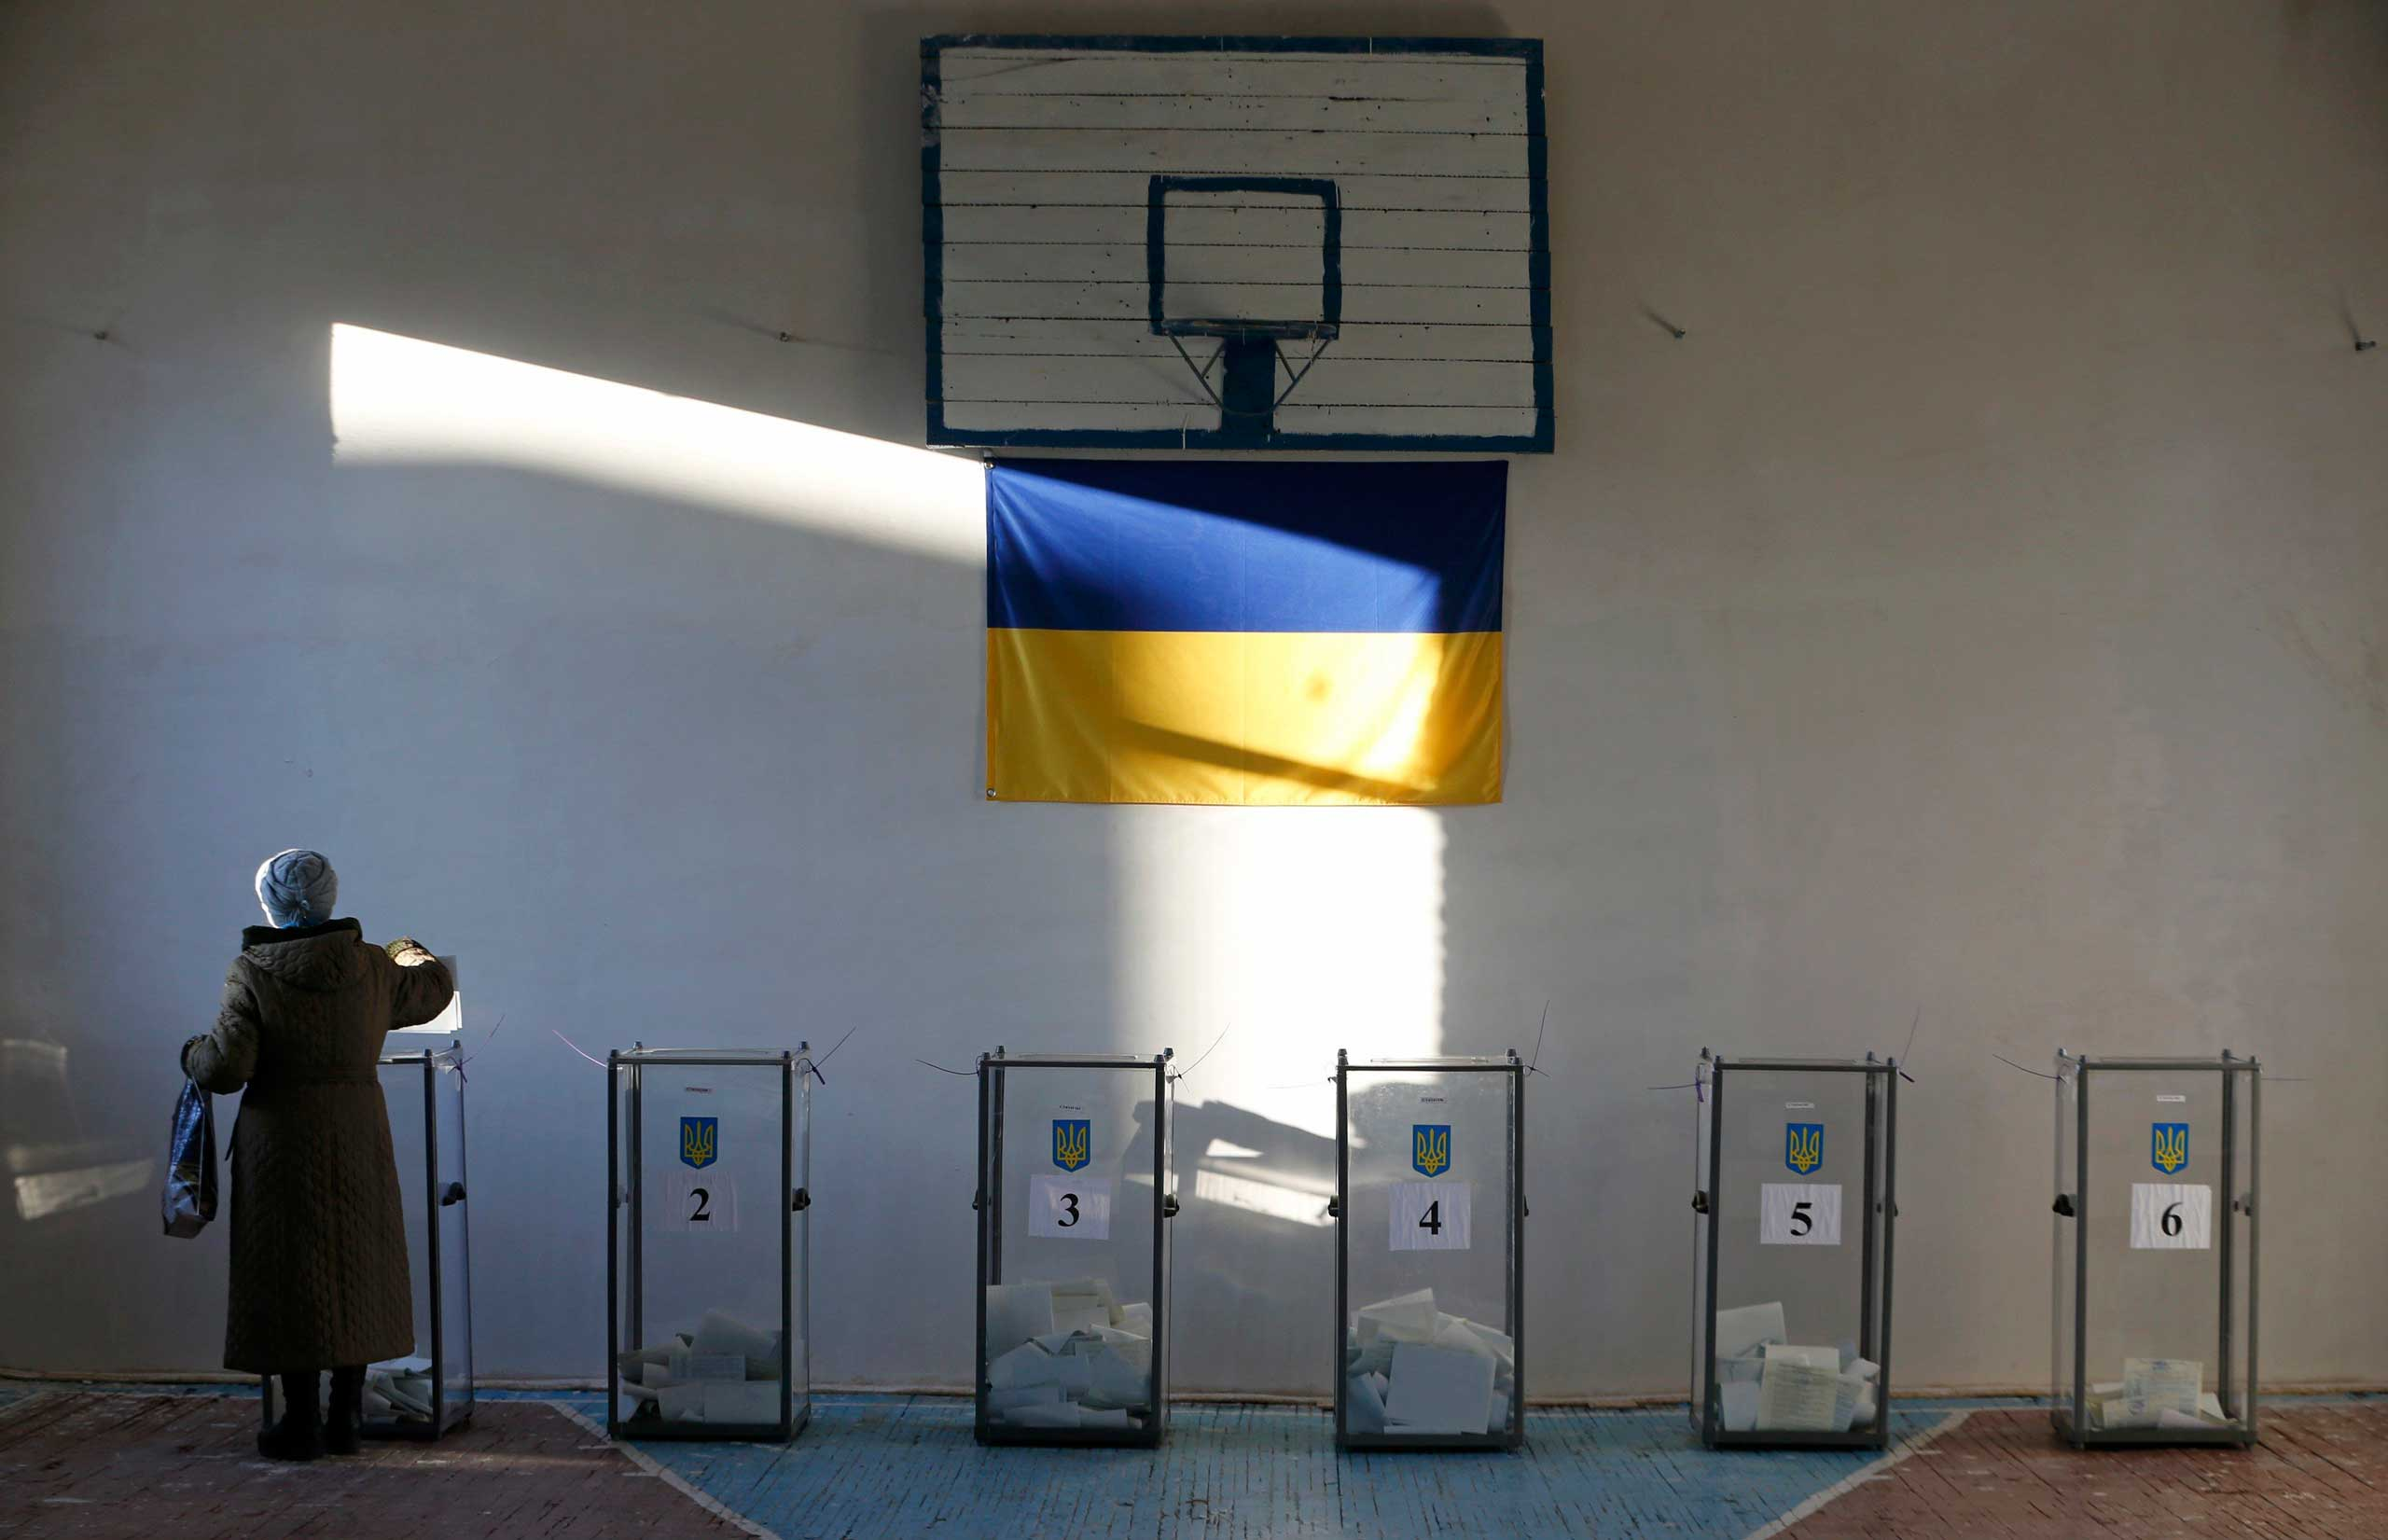 Oct. 26, 2014. A woman casts a ballot during a parliamentary election at a school gym in the village of Semyonovka near Slaviansk, eastern Ukraine. Ukrainians voted on Sunday in an election that is likely to install a pro-Western parliament and strengthen President Petro Poroshenko's mandate to end separatist conflict in the east, but may fuel tension with Russia.